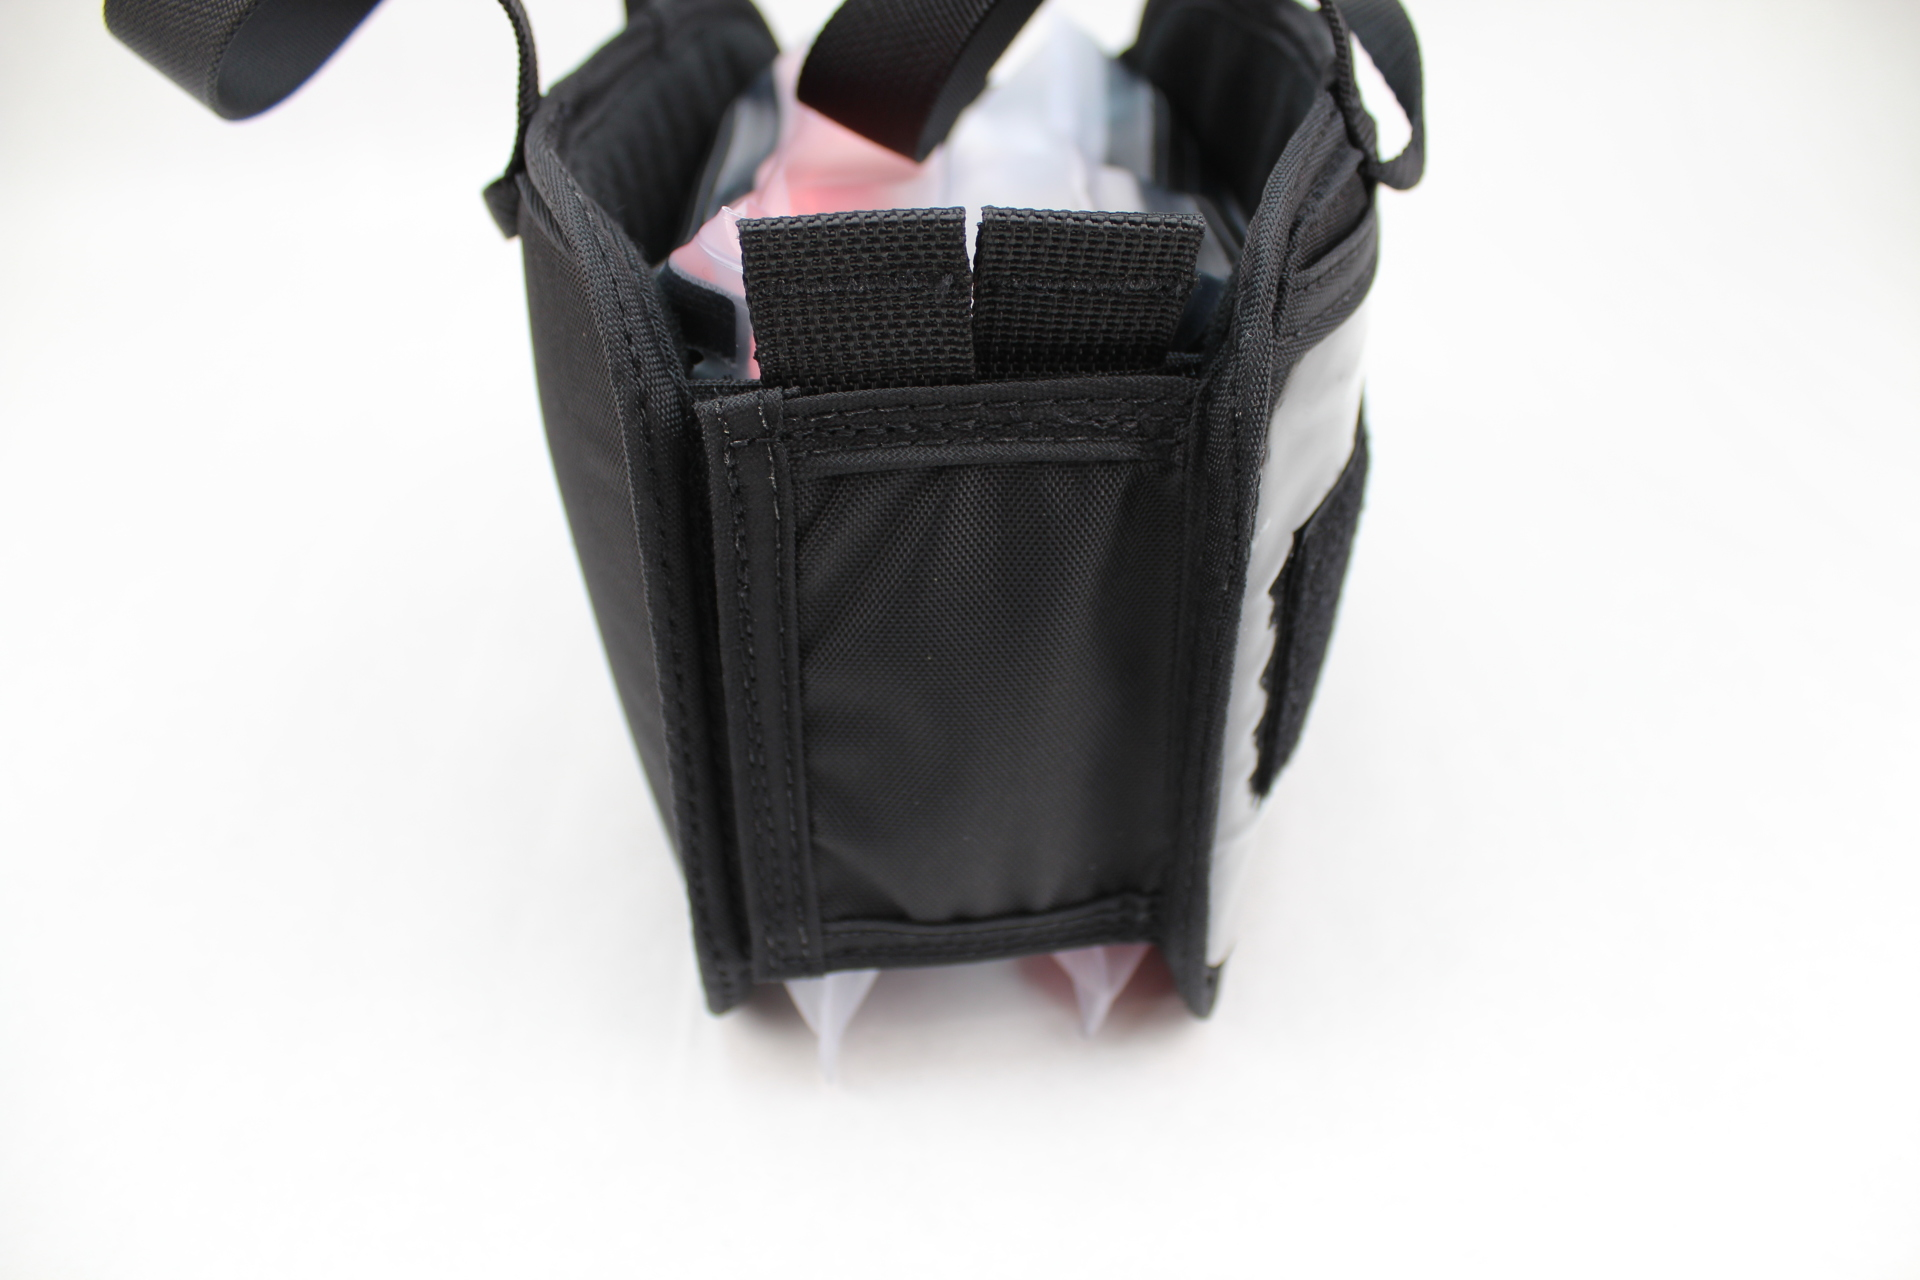 Small Tactical DASH bag binding side view